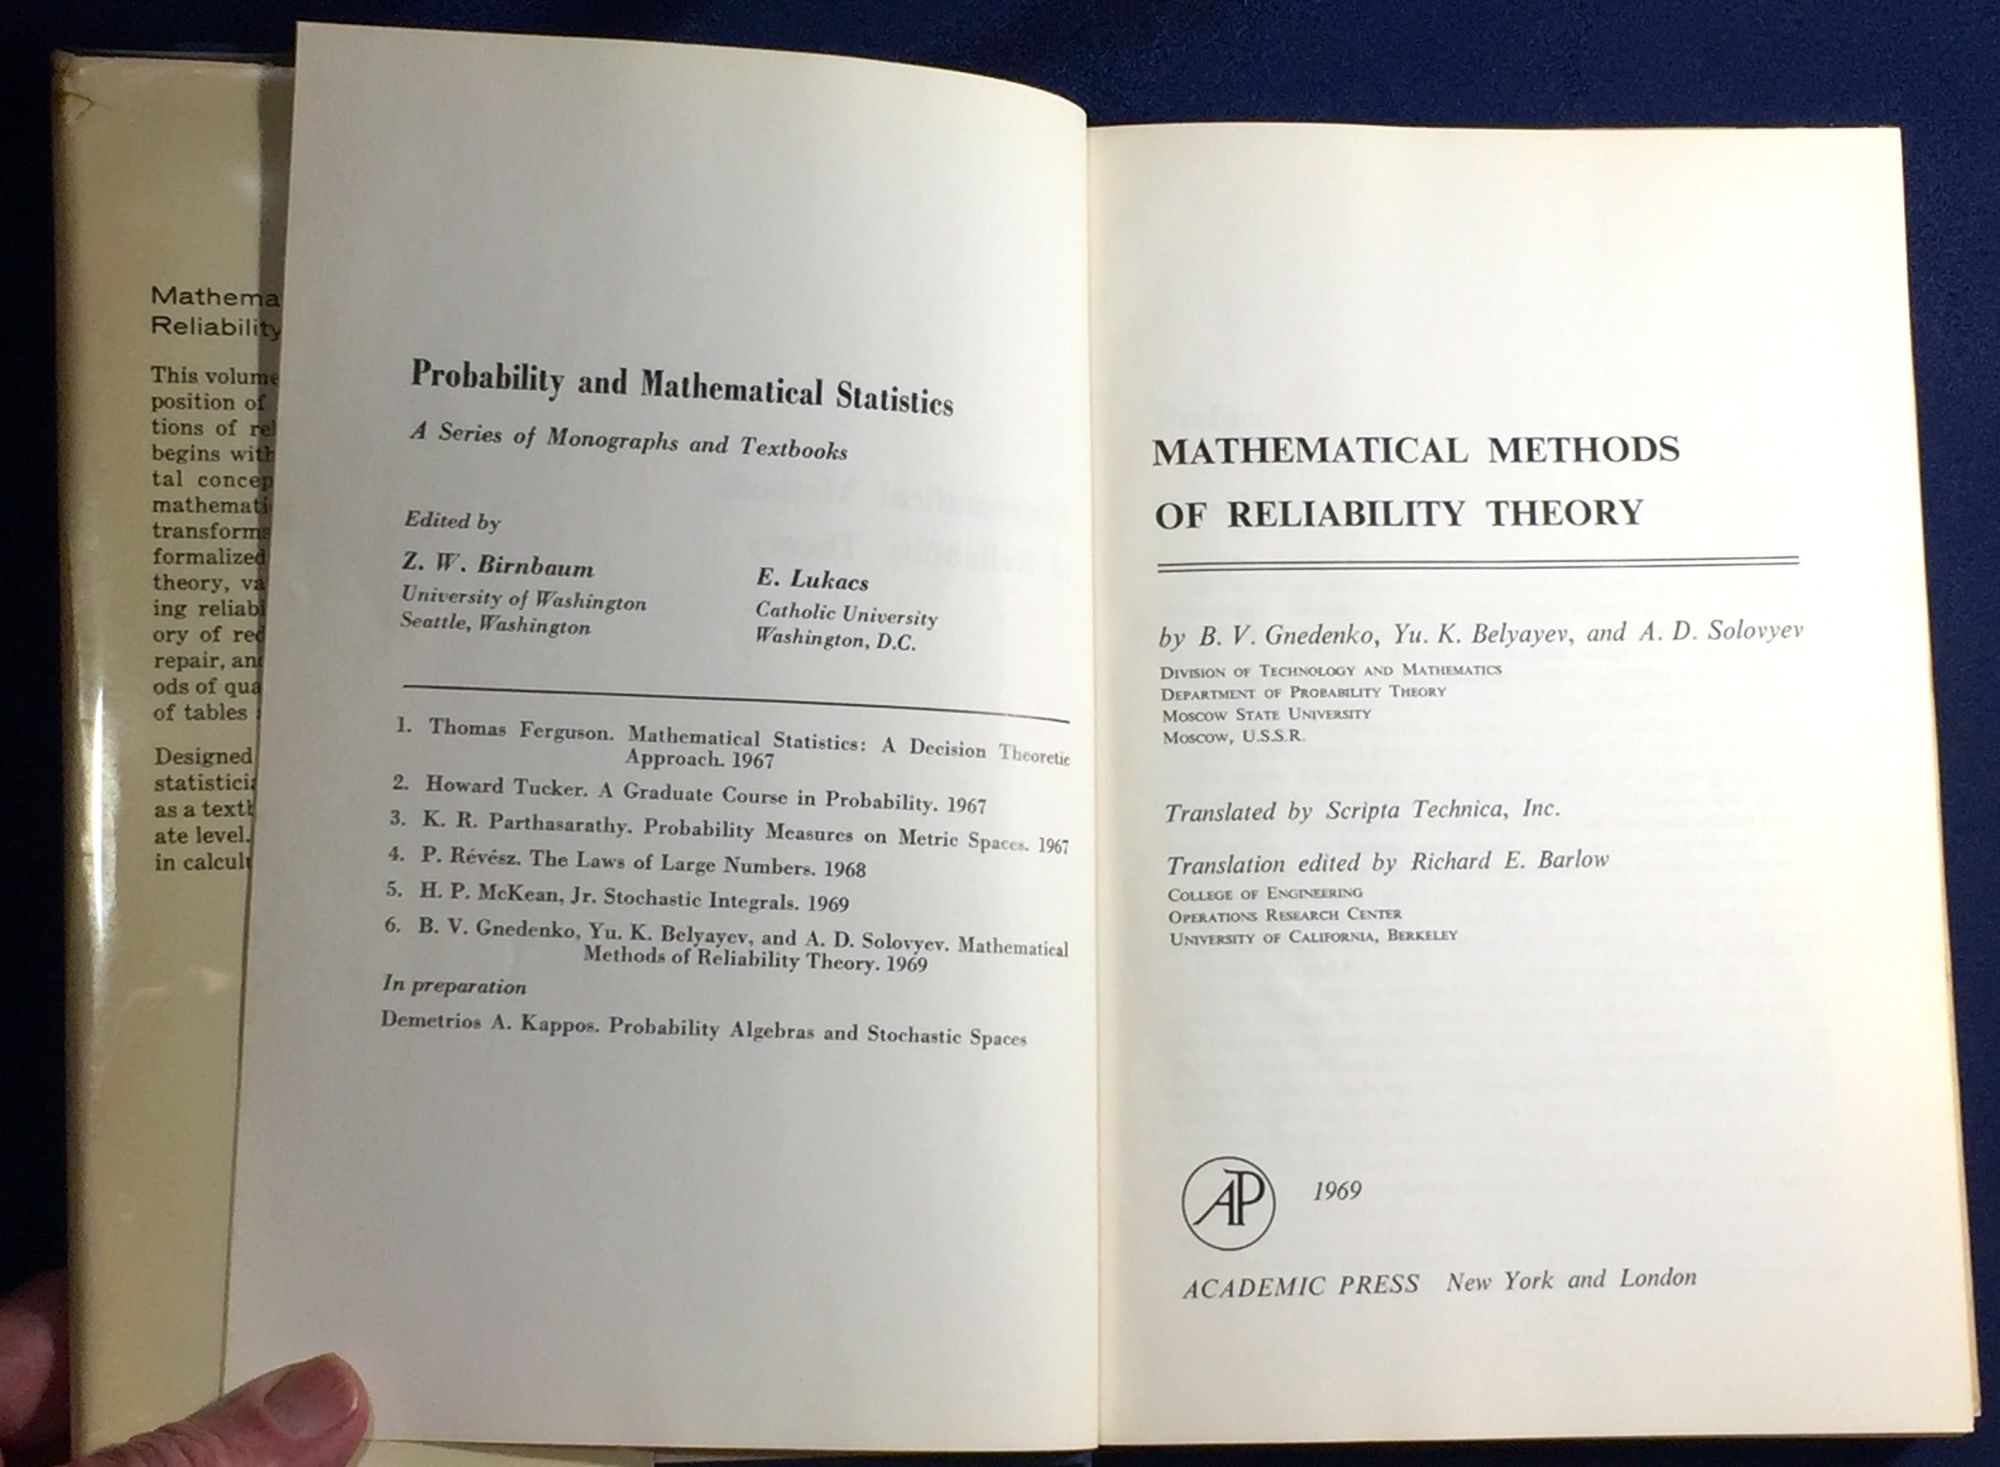 MATHEMATICAL METHODS OF RELIABILITY THEORY